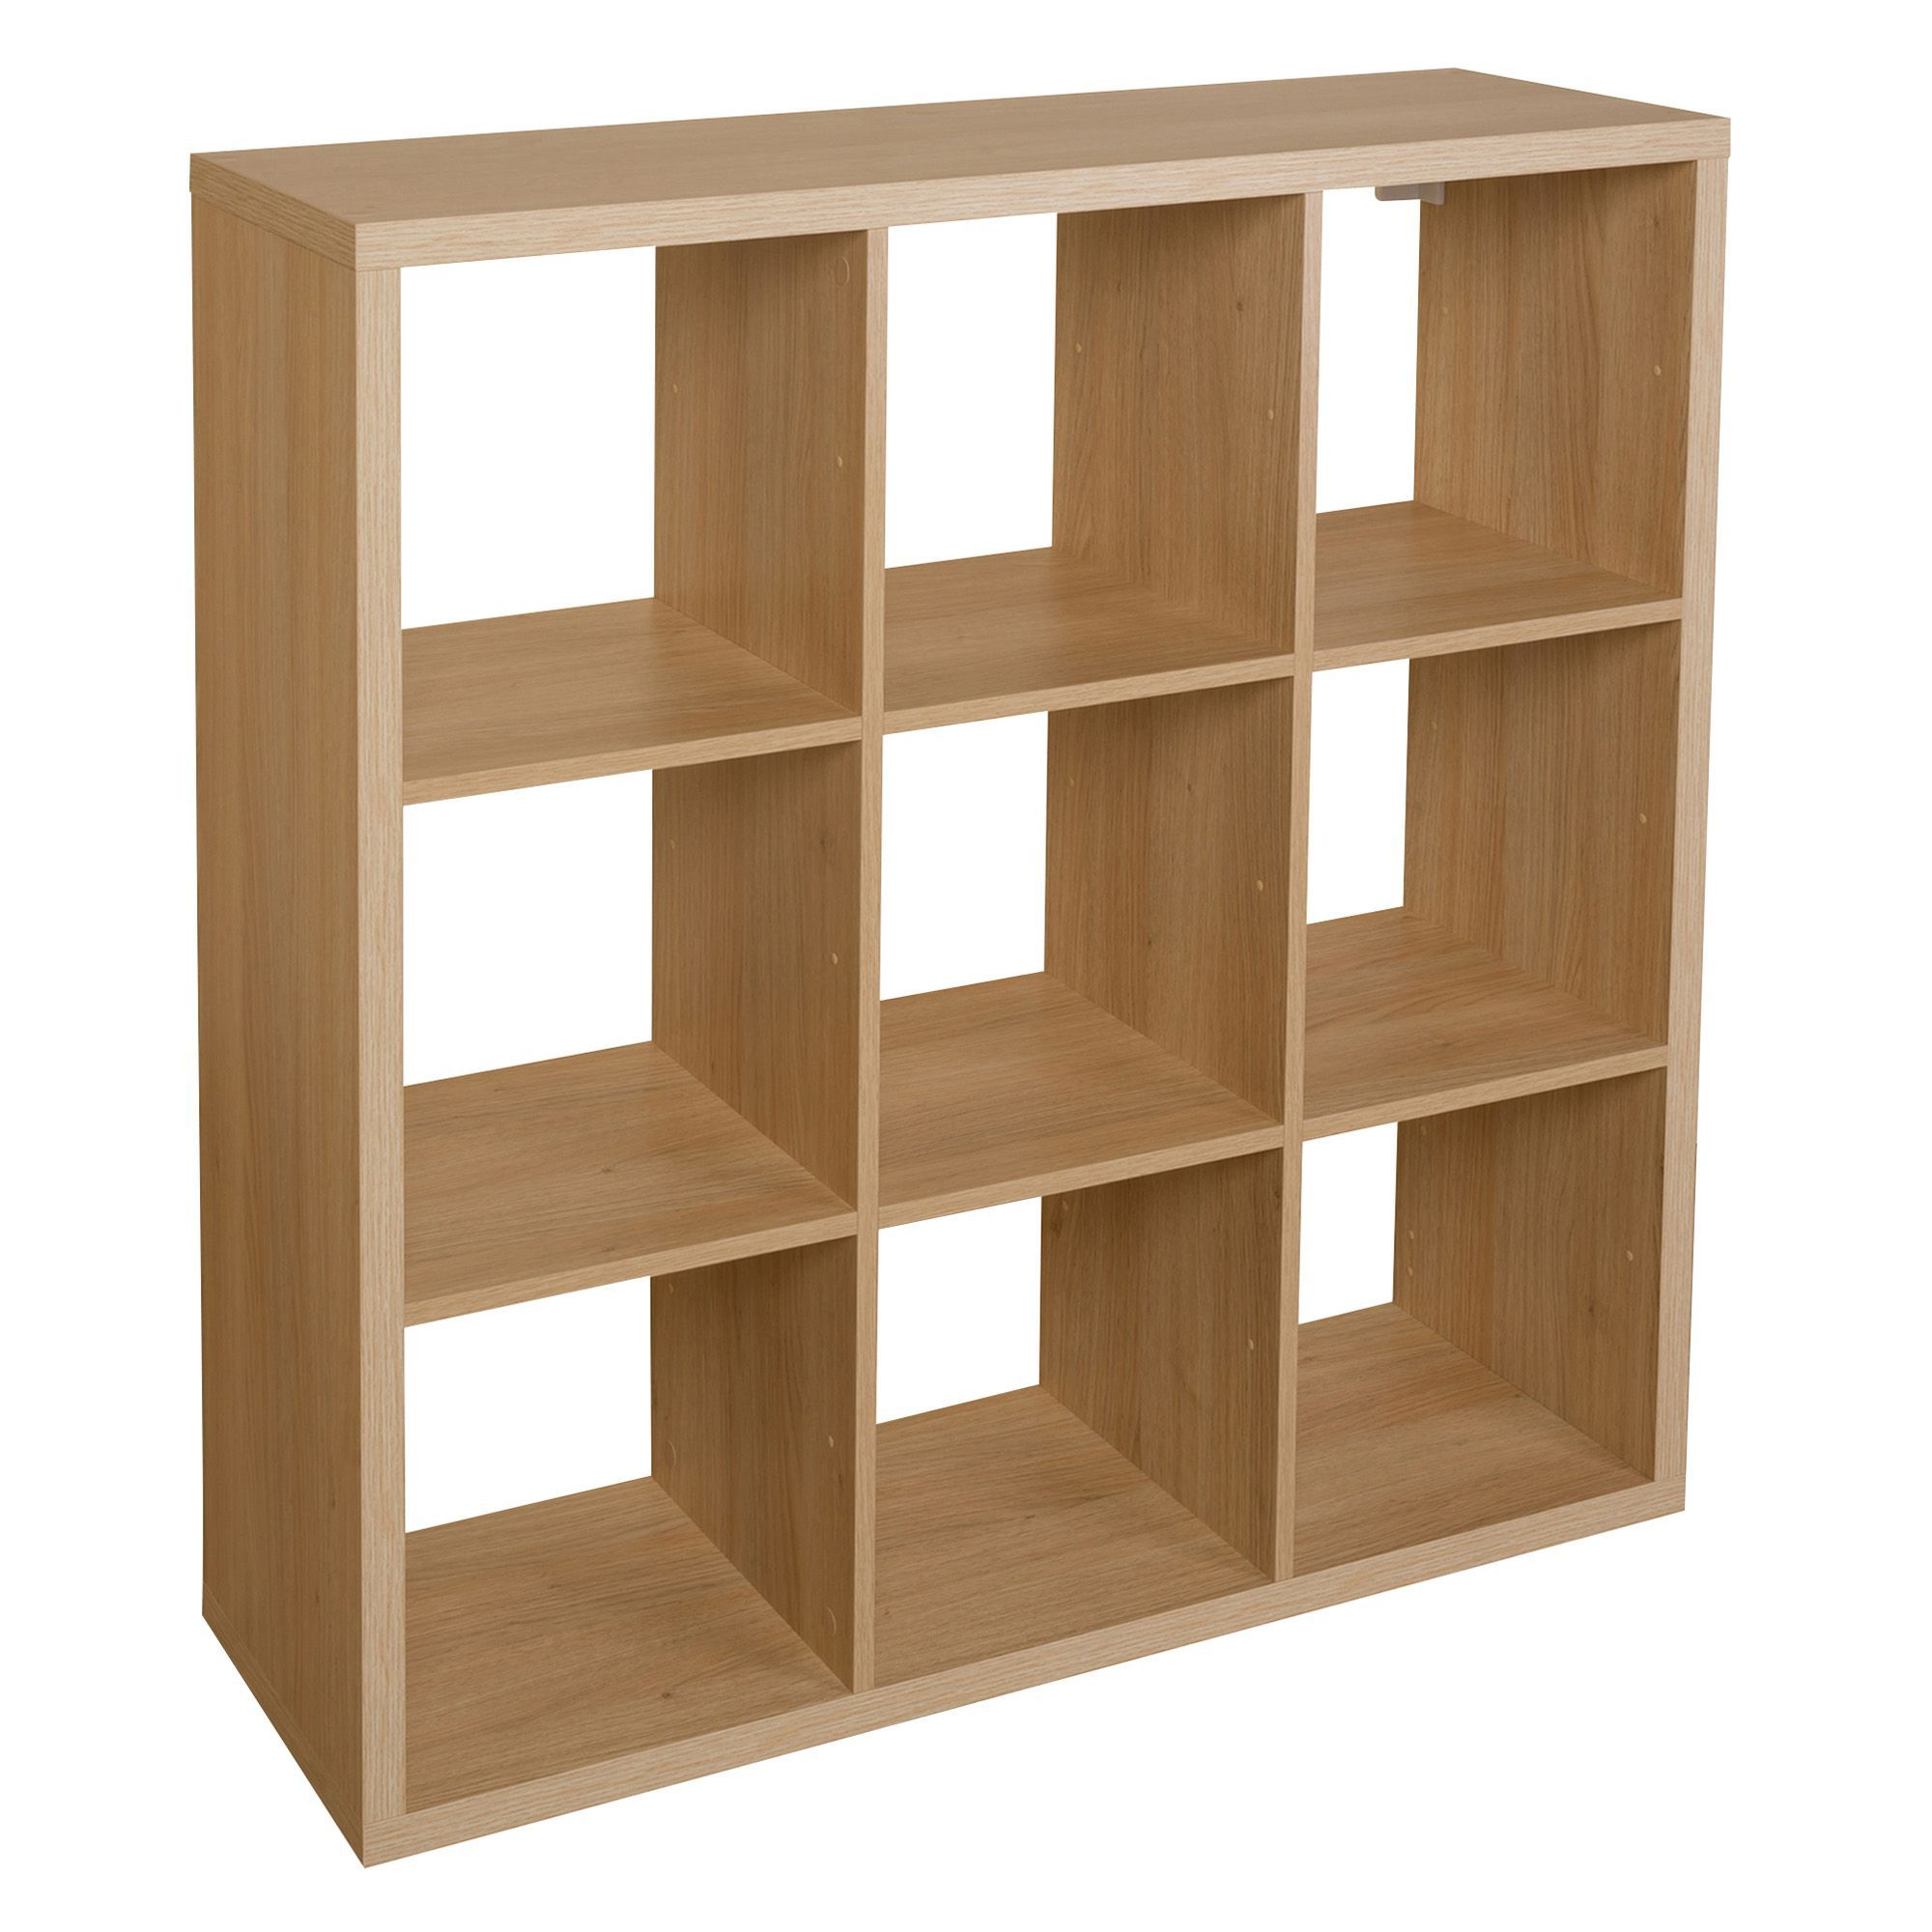 Image Result For Cube Shelving Ideas